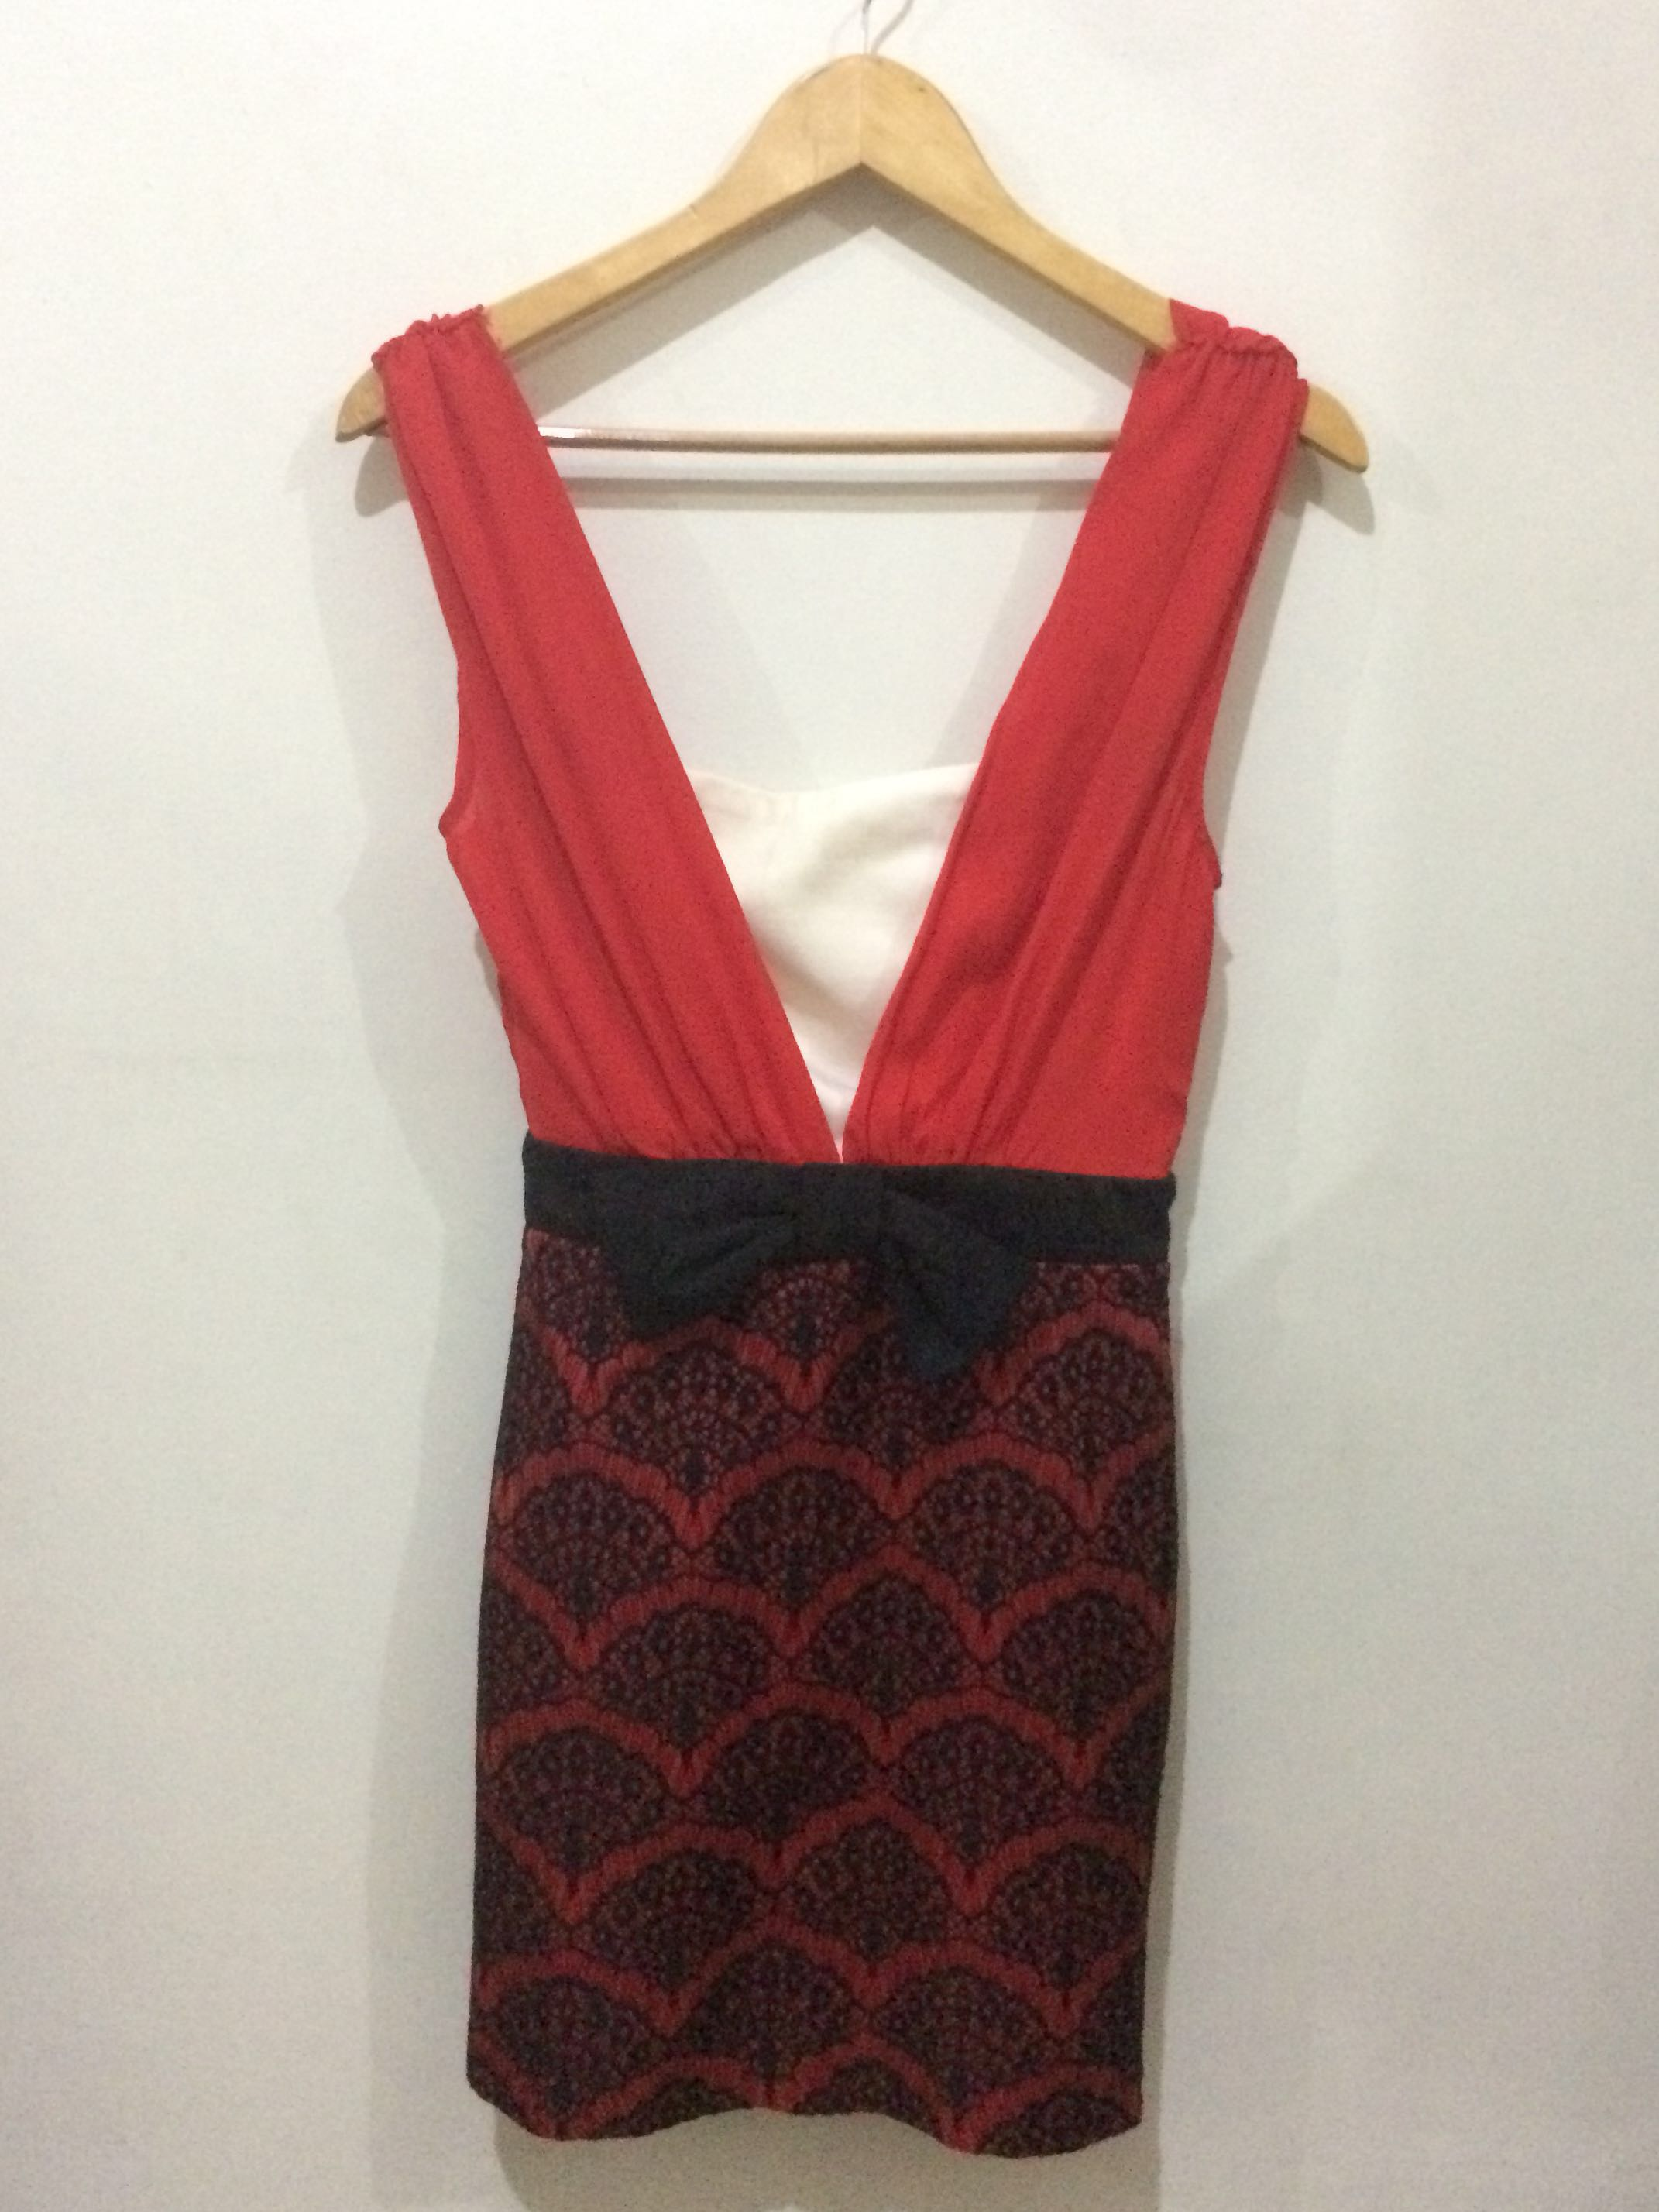 People are People (Sewn with Love) Bodycon Dress